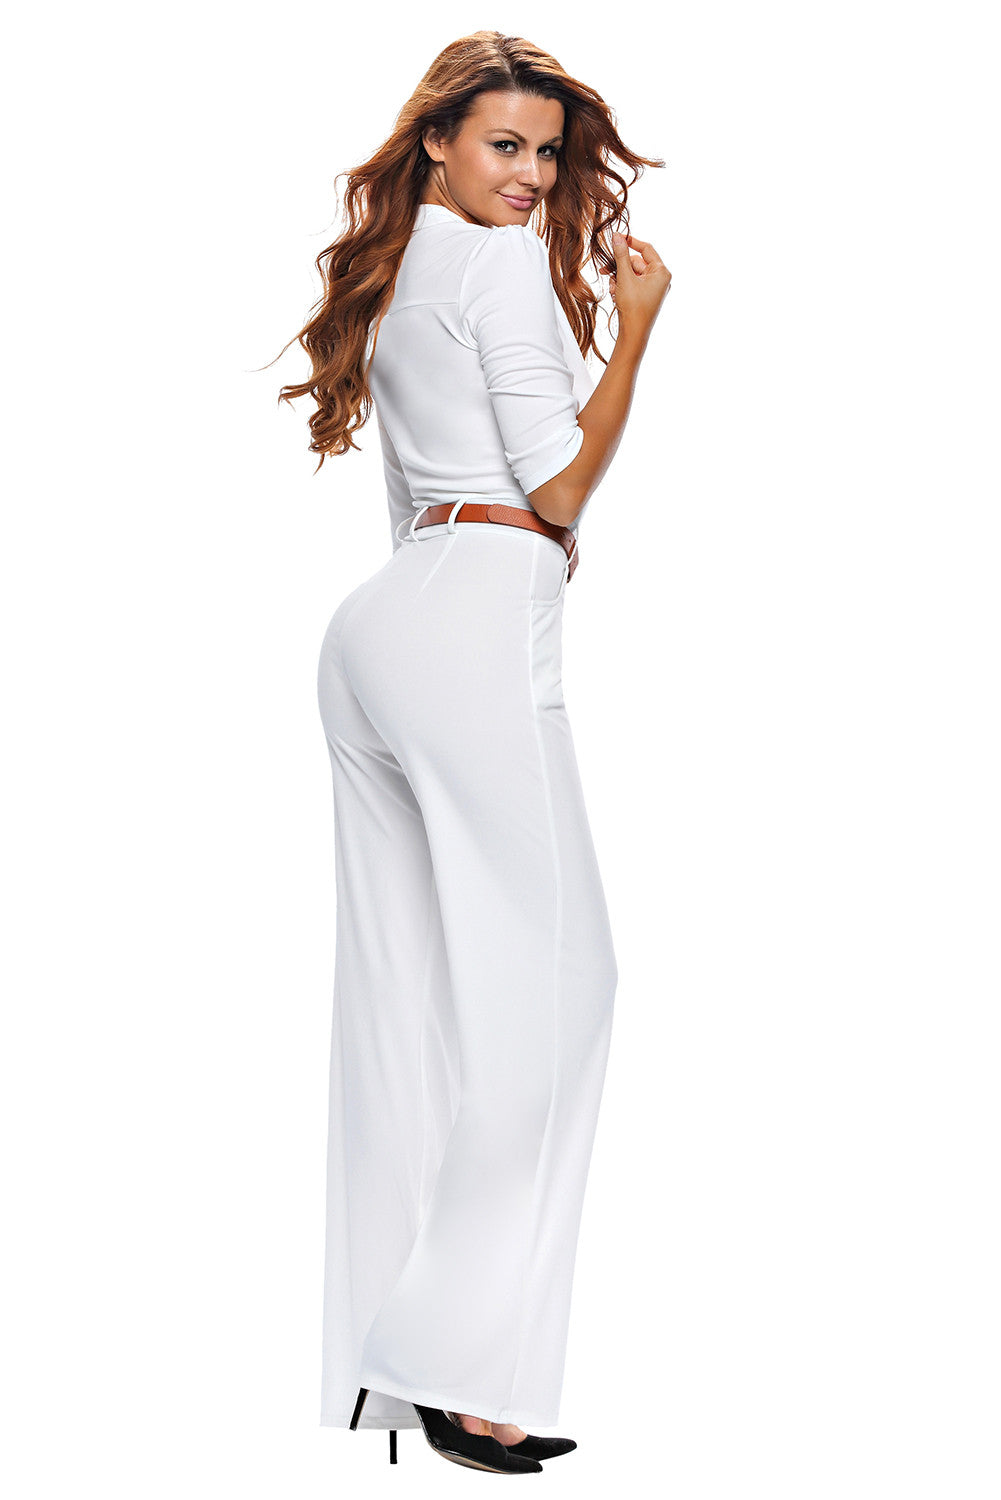 Half Sleeve Diva Fashion Wide Leg Jumpsuit 64205 - IBL Fashion - 10